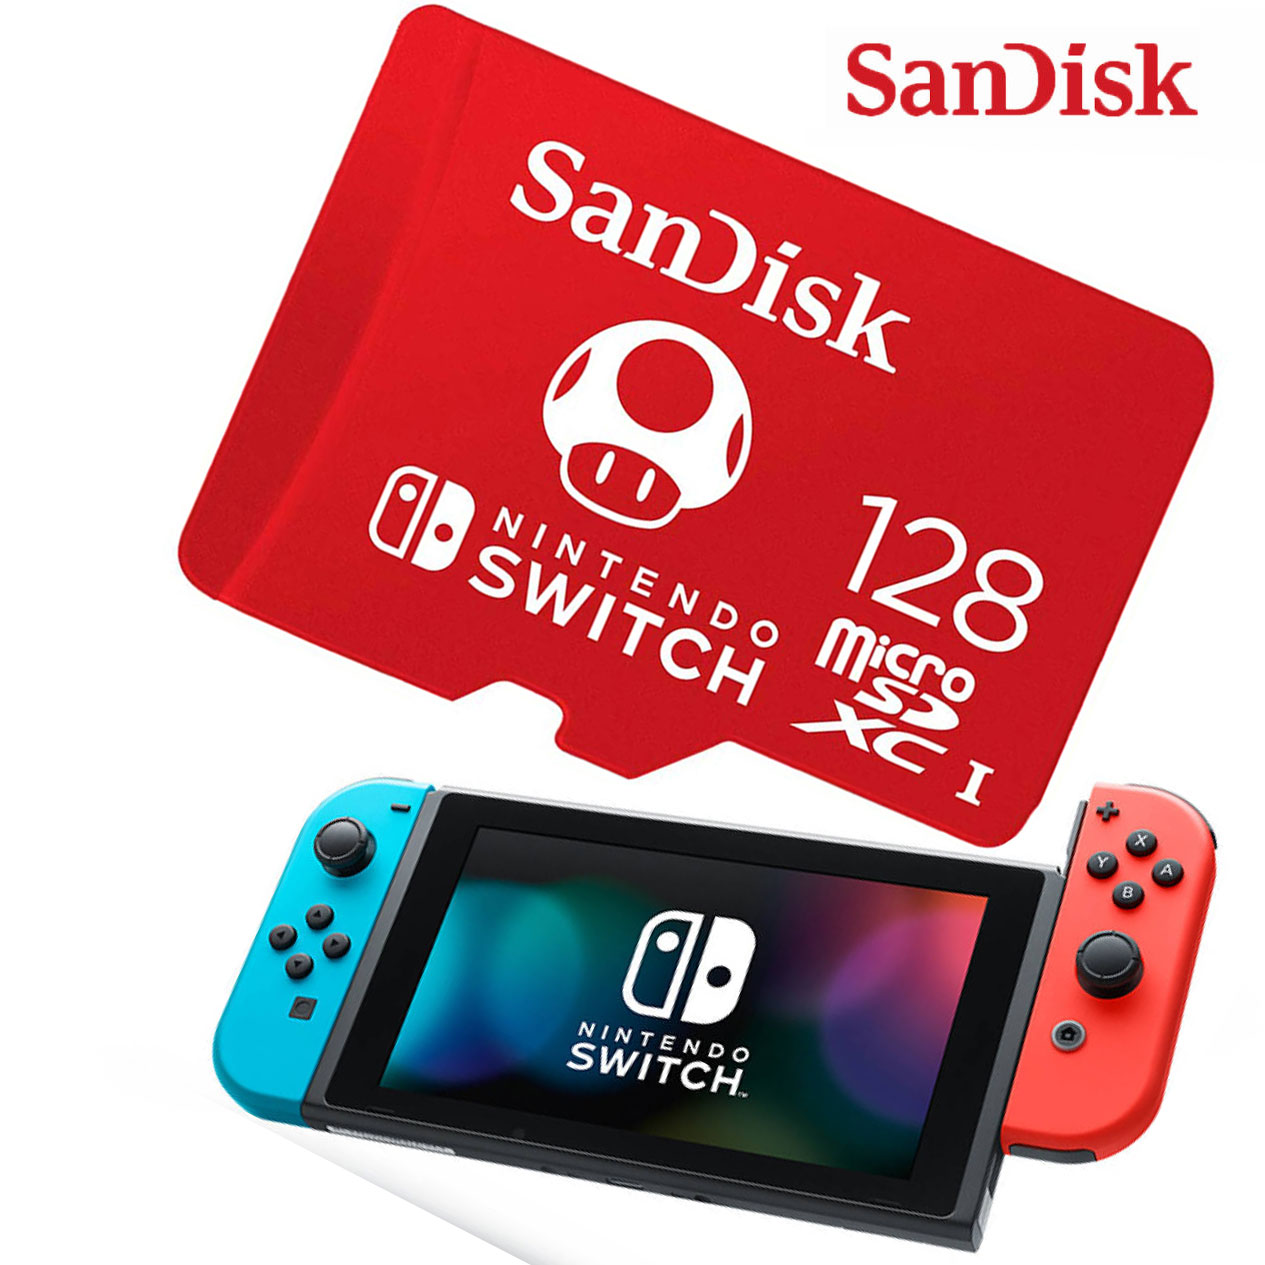 Sandisk Nintendo Switch Micro SD Memory Card With Games 64GB 128GB 256GB Micro SD Carte Memoire Nintendo Switch Flash Card Games